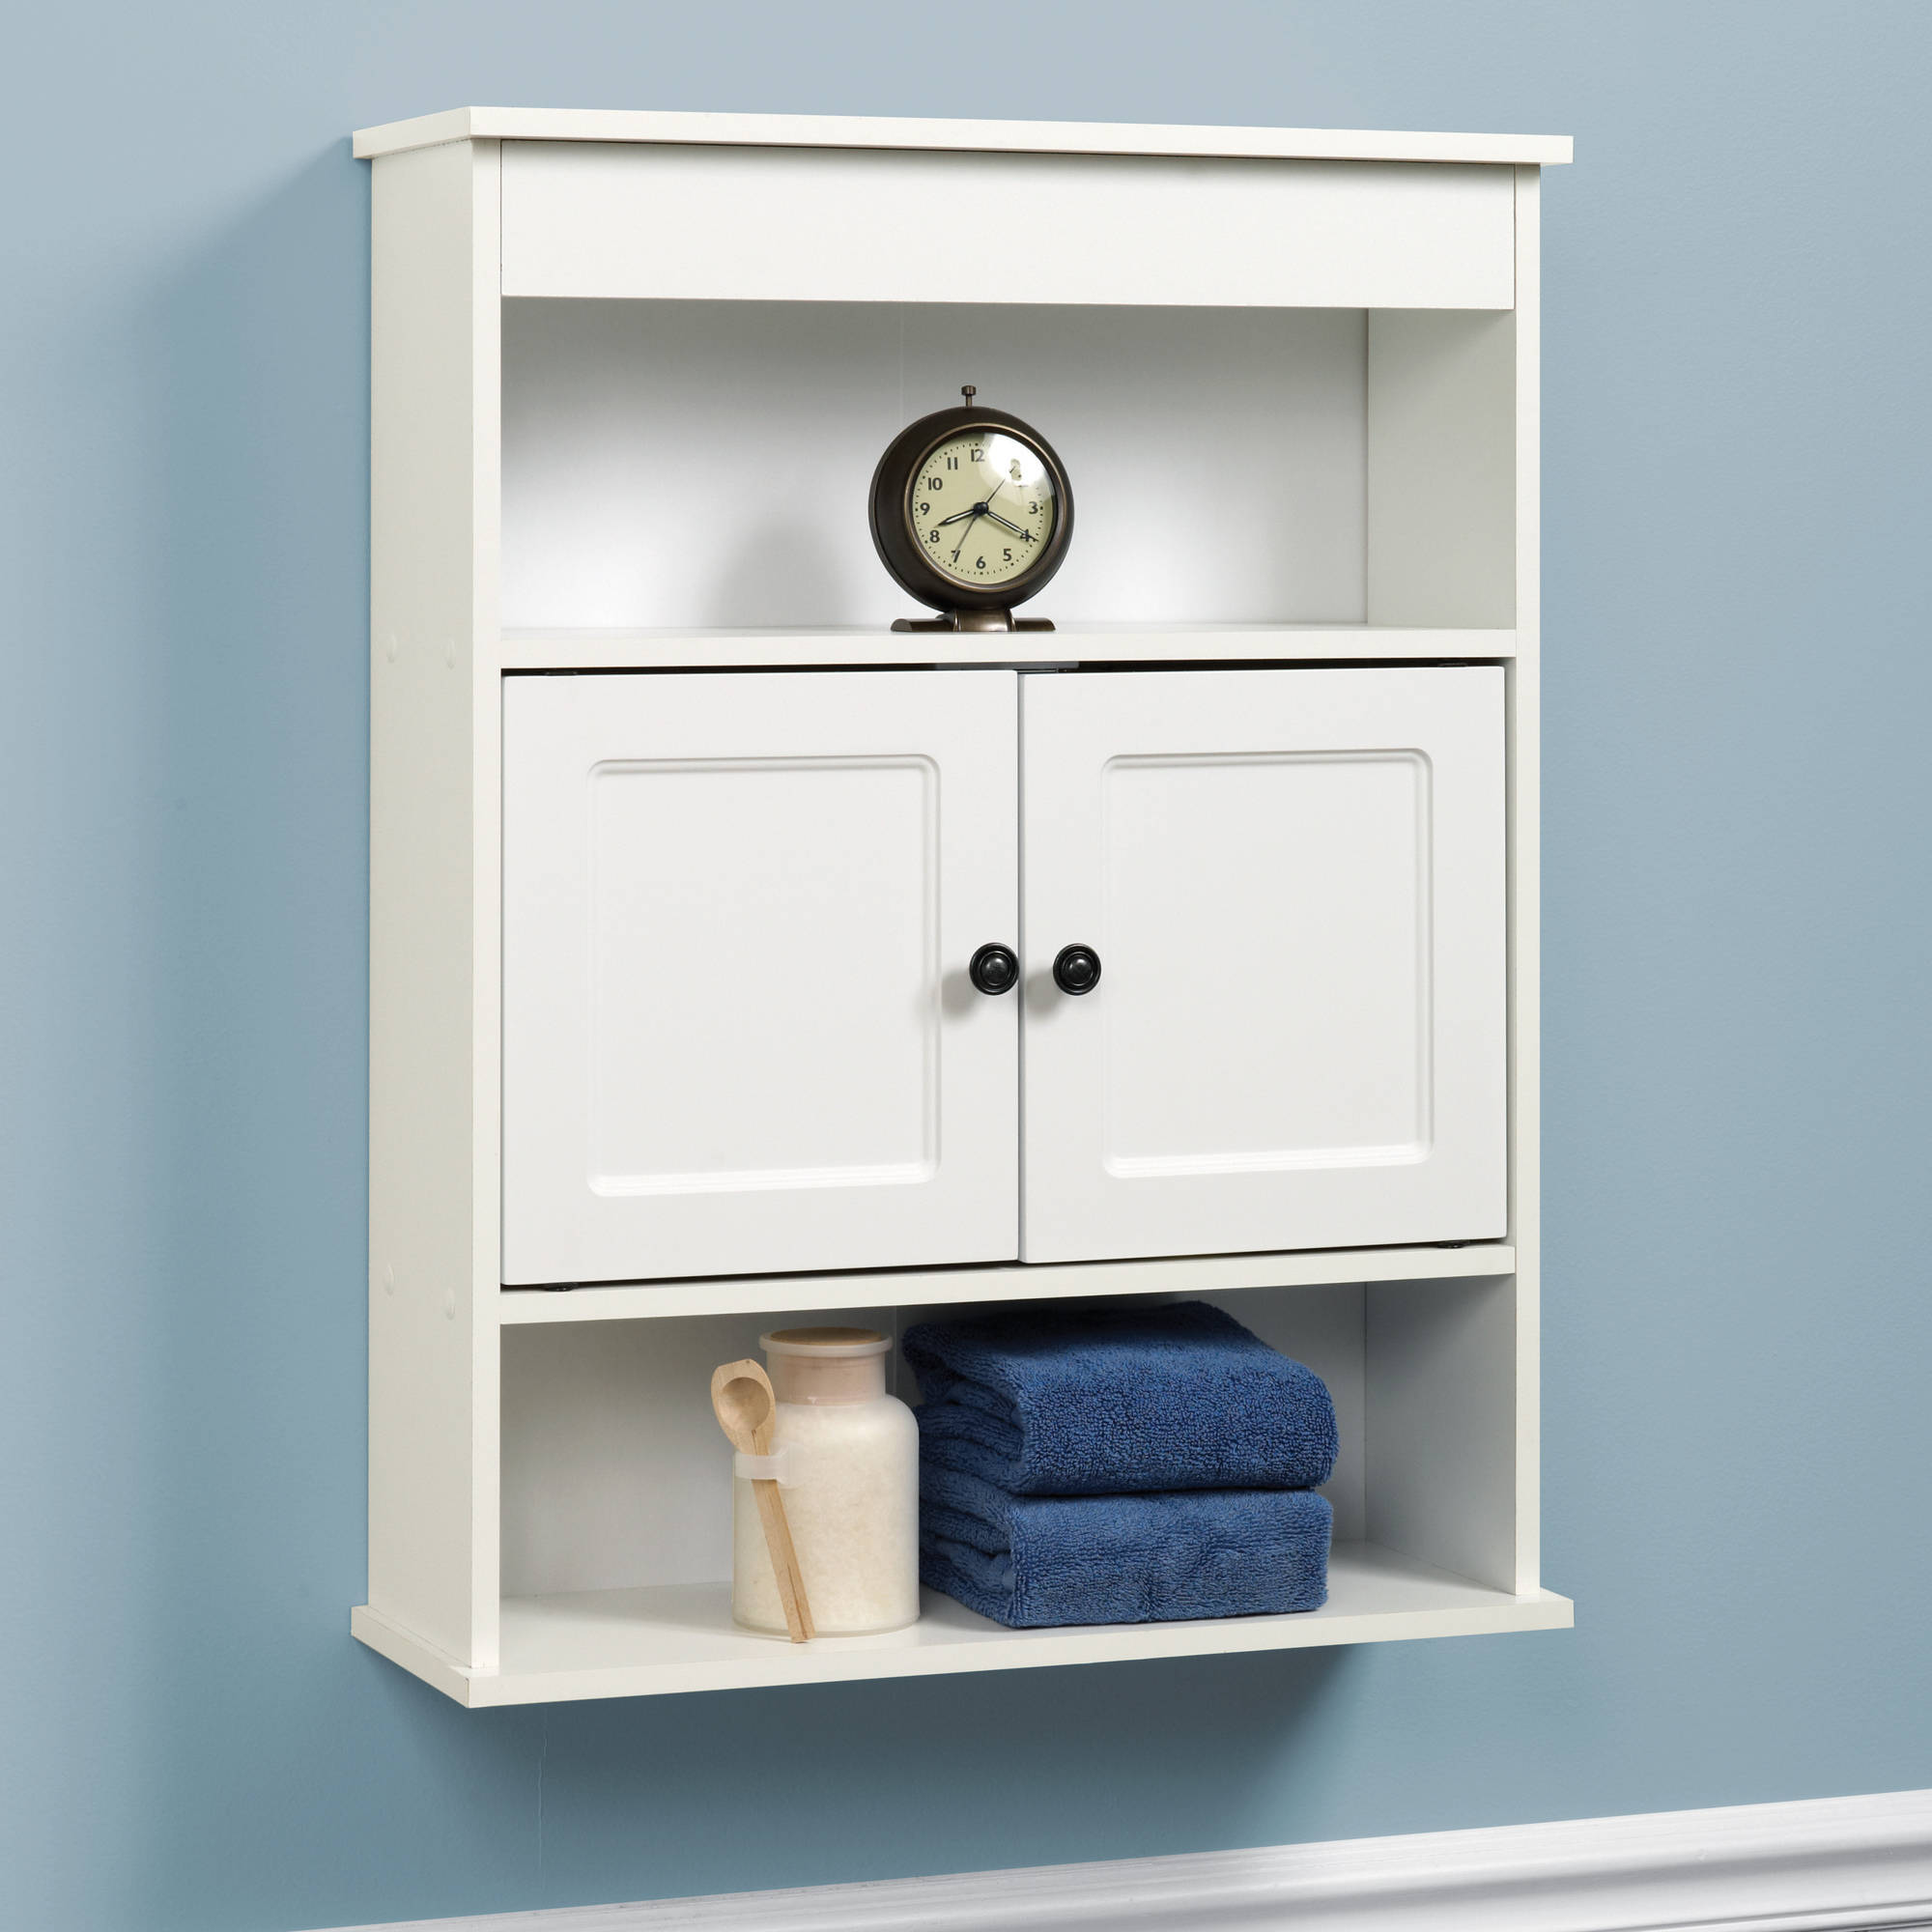 Cabinet wall bathroom storage white shelf organizer over for In wall bathroom storage